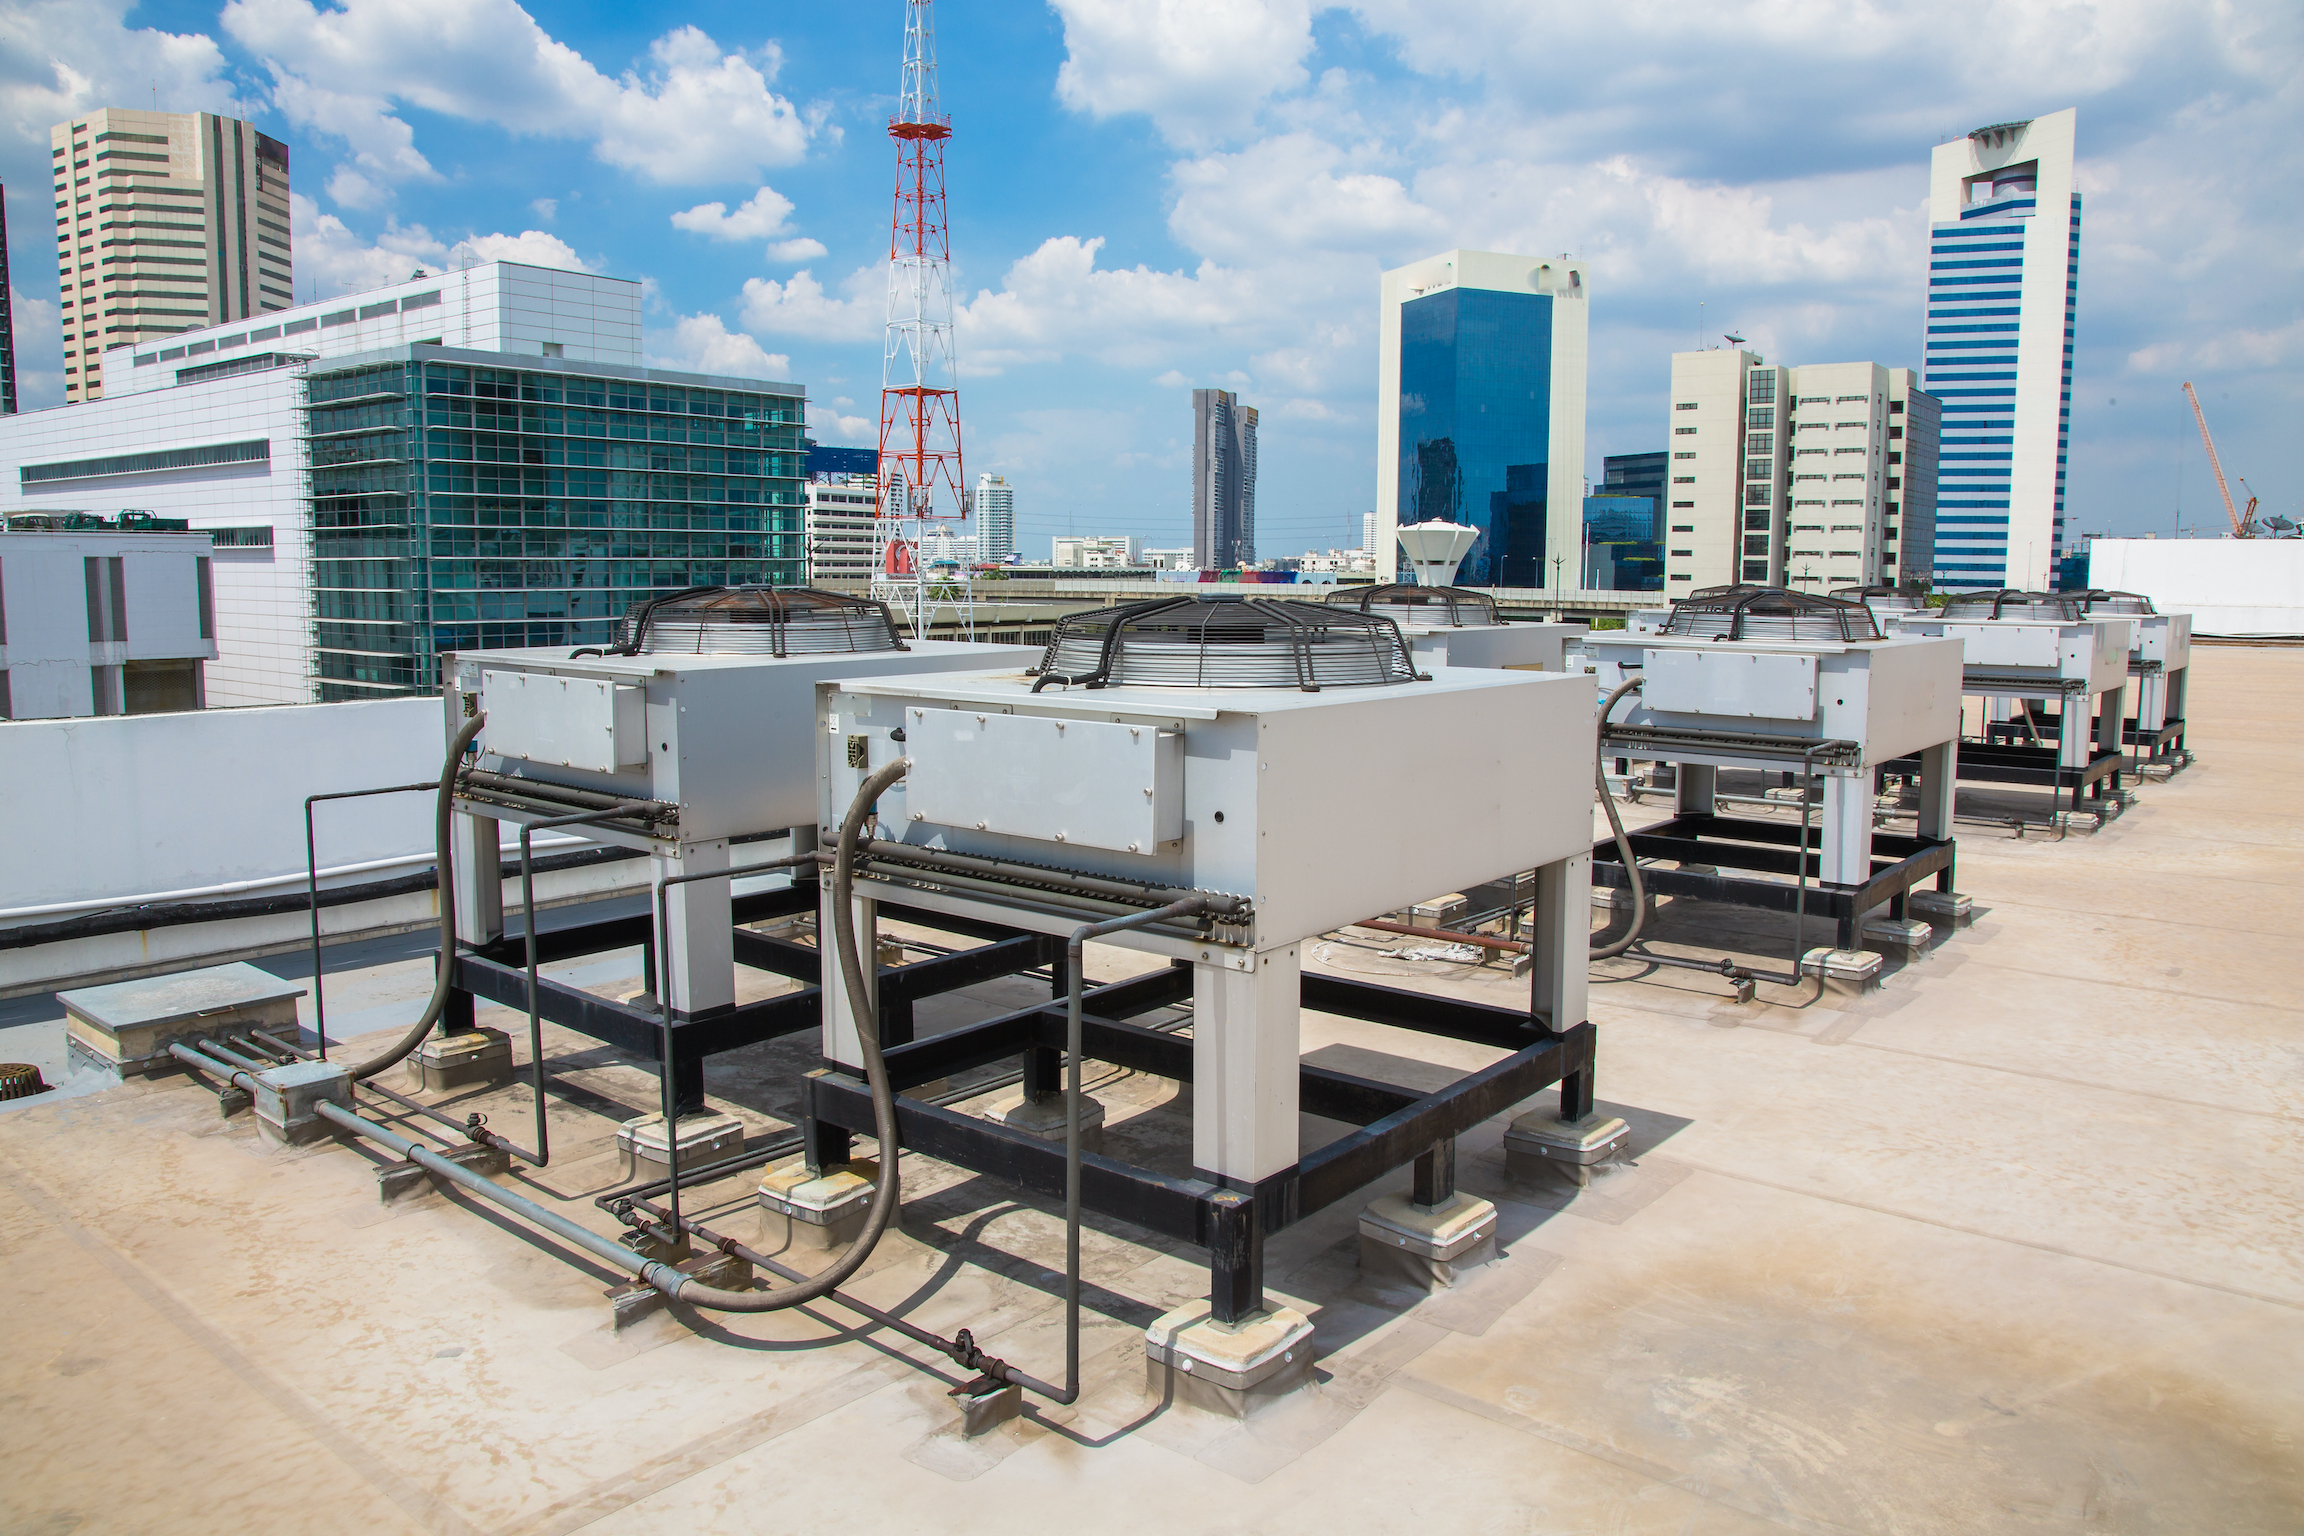 HVAC equipment on an office building